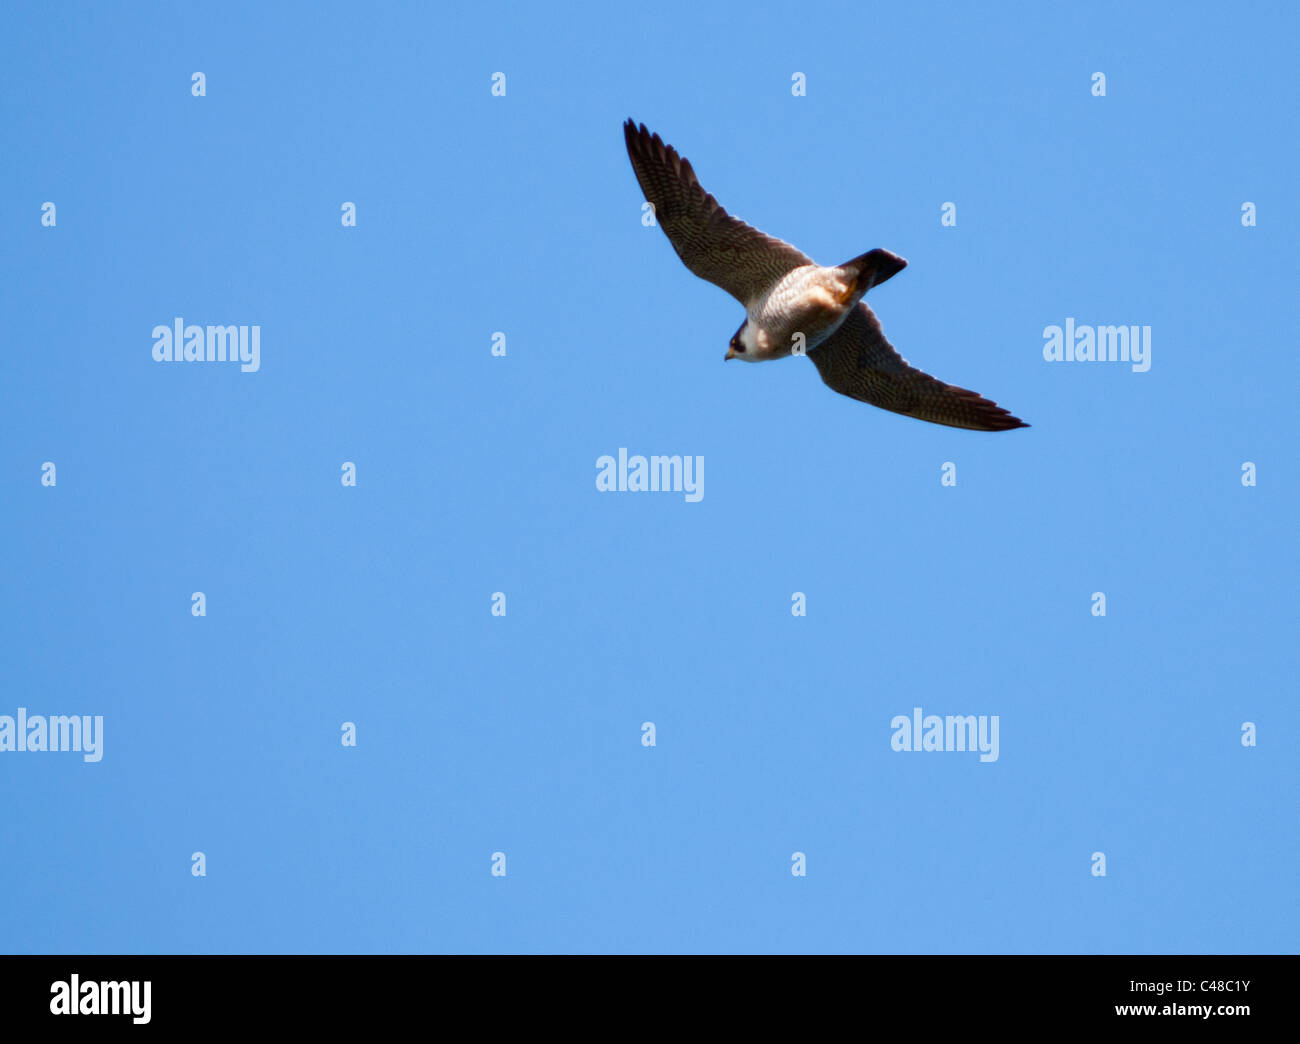 Peregrine Falcon (Falco peregrinus) circling in sky looking for prey below off the Pembrokeshire coast in Wales - Stock Image